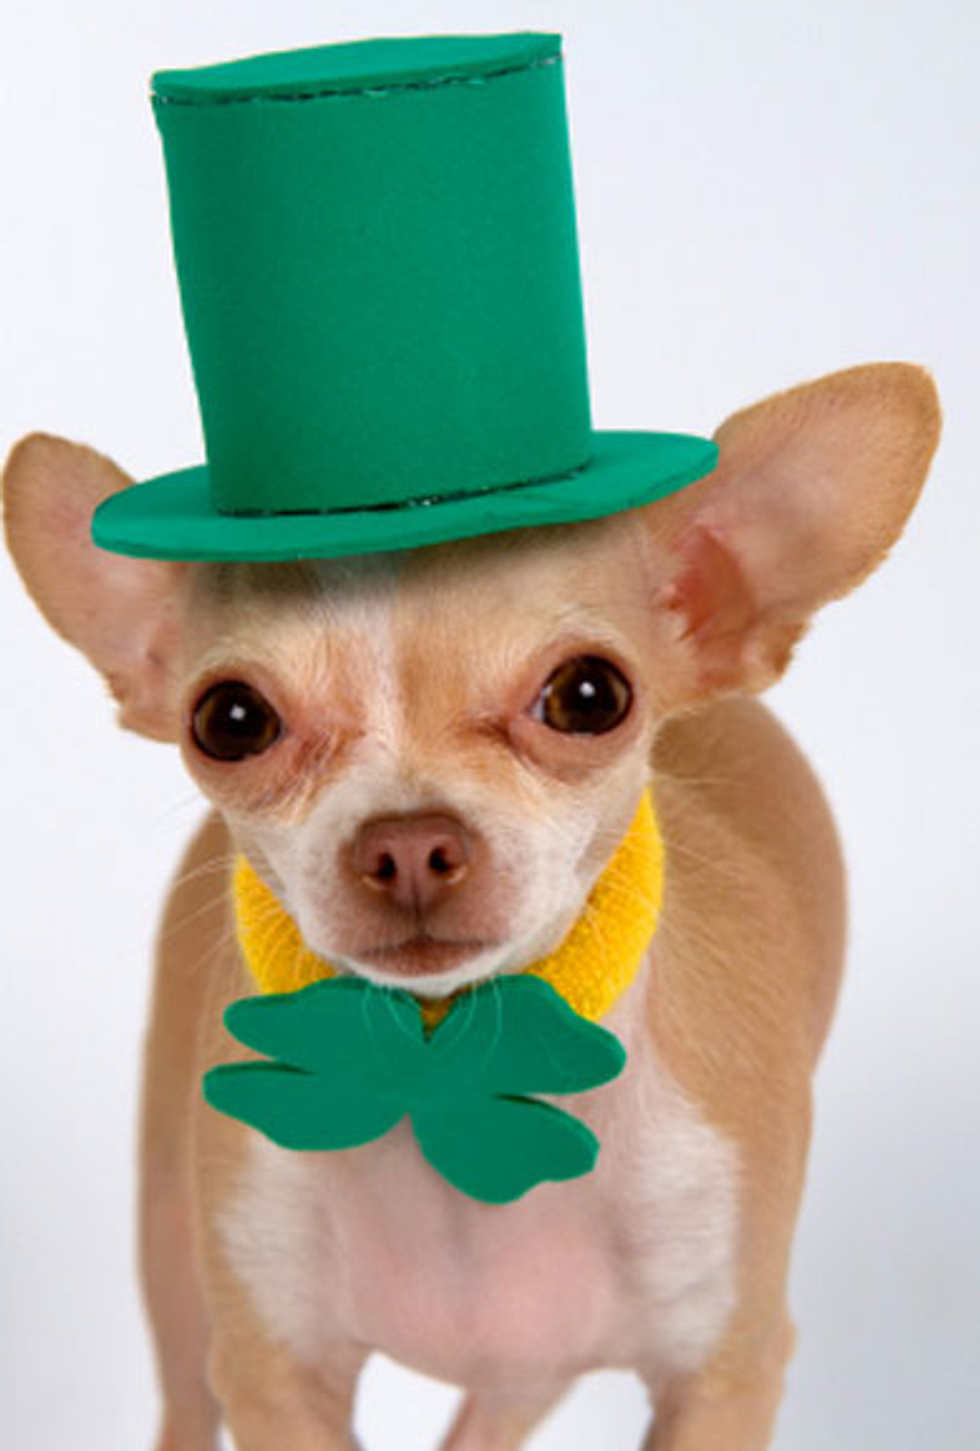 10 Non-Douchey Ways to Celebrate St. Patrick's Day In NYC